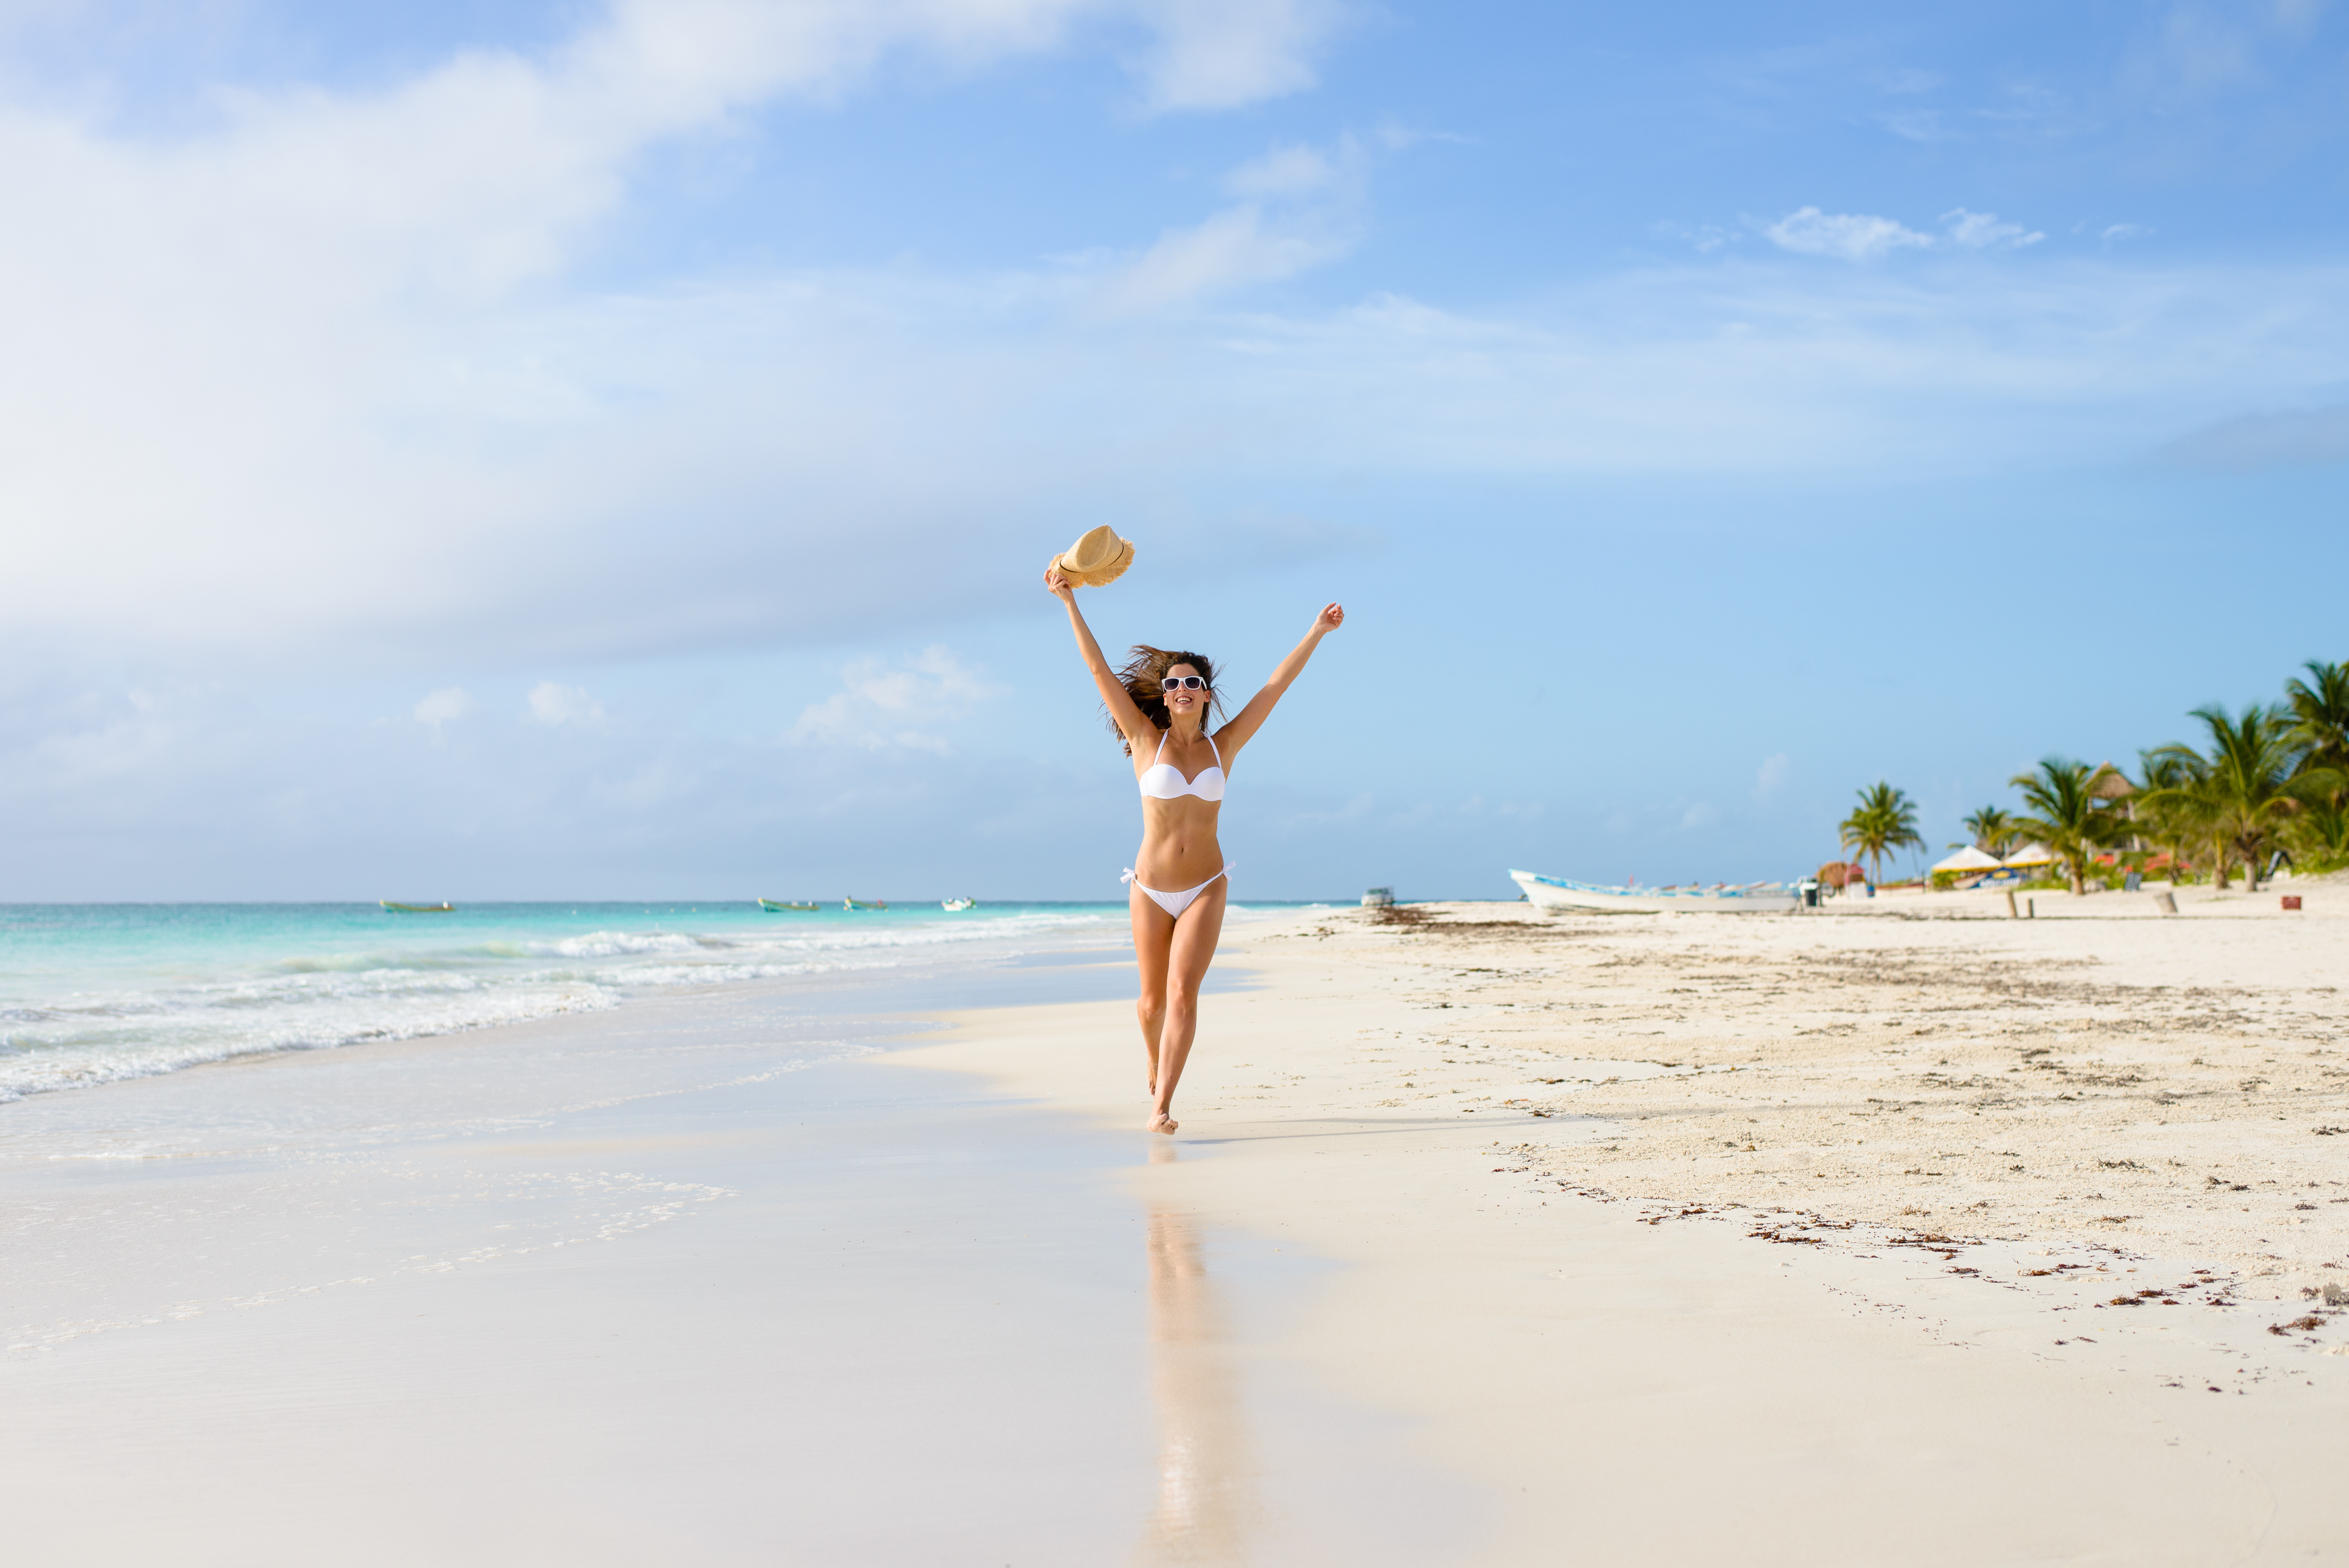 Beautiful joyful woman in white bikini enjoying tropical beach and caribbean summer vacation. Tanned brunette running free by the sea at Playa Paraiso, Riviera Maya, Mexico.